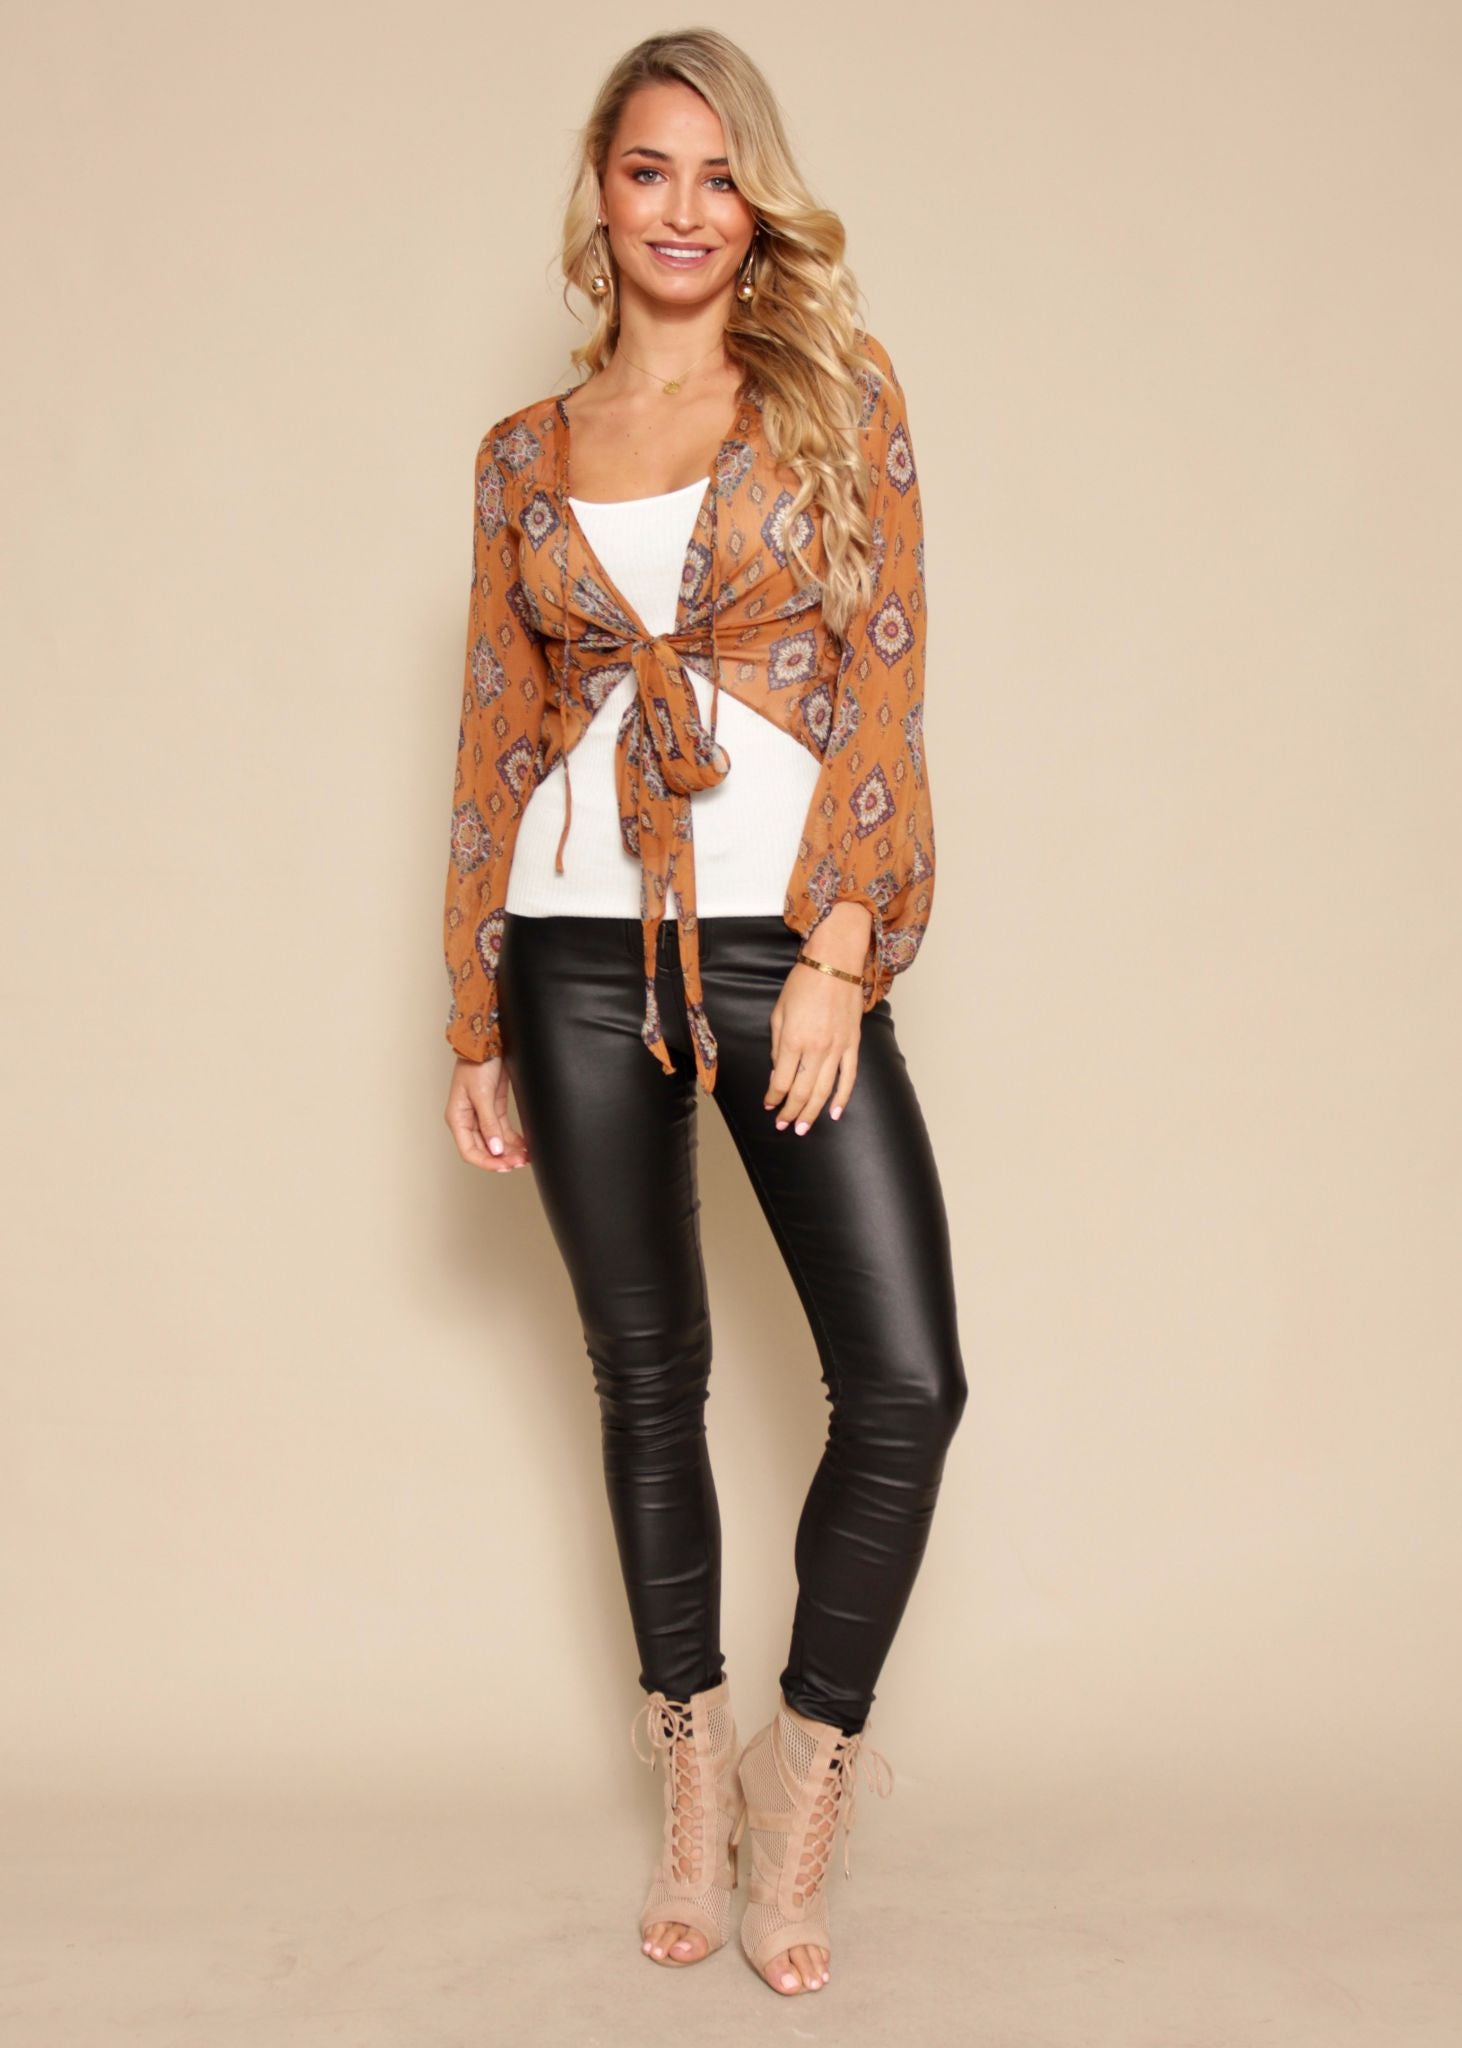 Stay Afloats Blouse - Amber